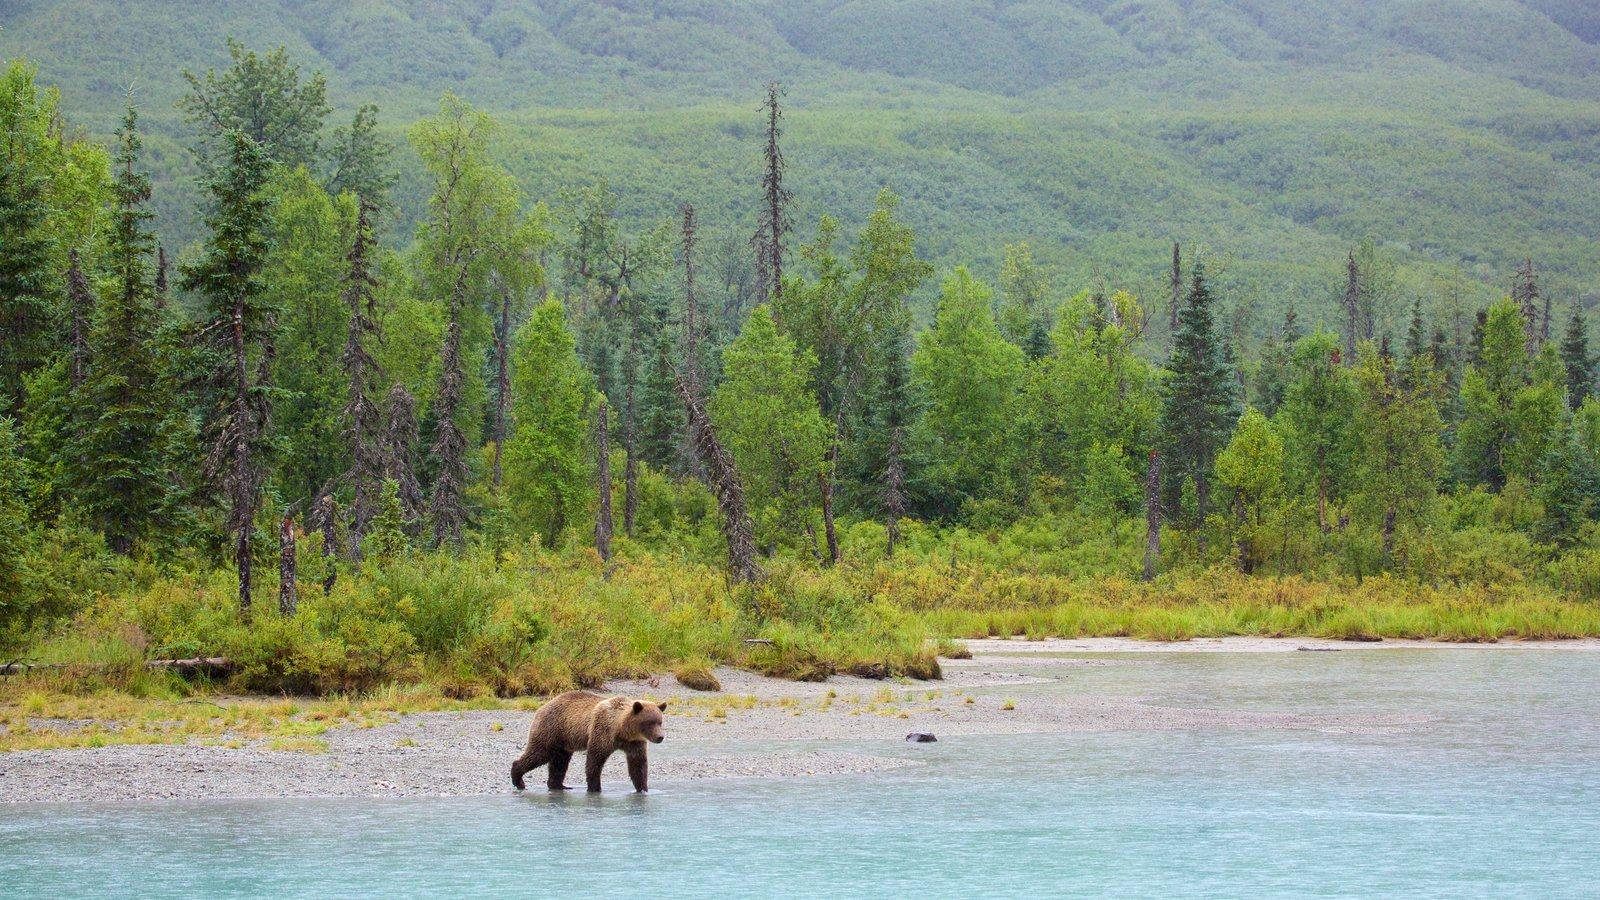 Lake Clark National Park and Preserve which includes general coastal views, dangerous animals and forest scenes